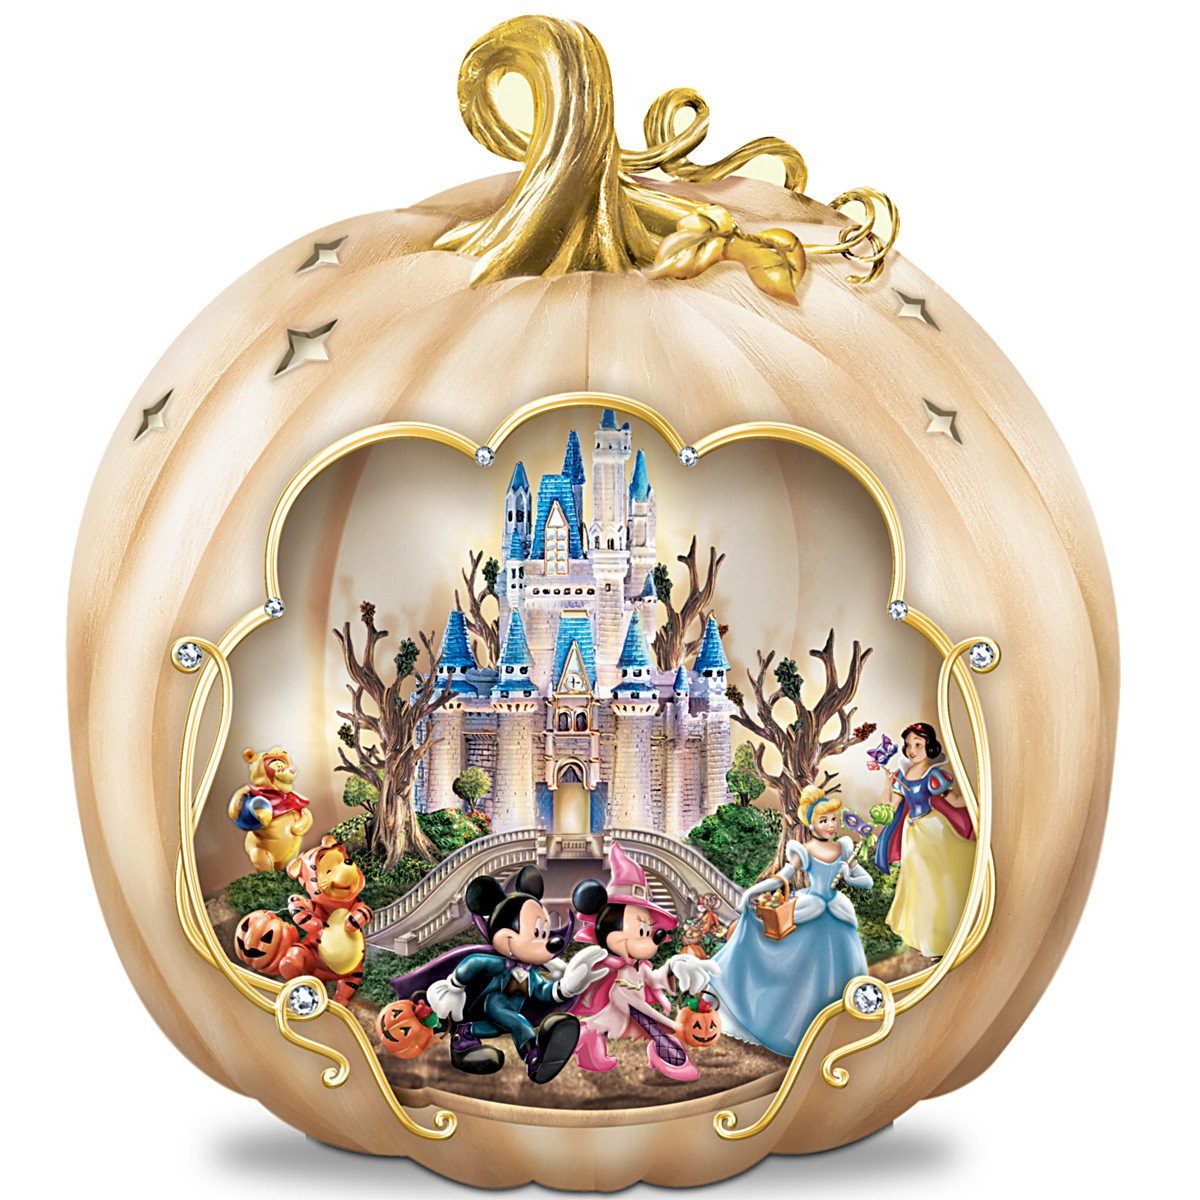 Disney's Spook-tacular: Halloween-Themed Pumpkin Tabletop Centerpiece by The Bradford Exchange by Bradford Exchange